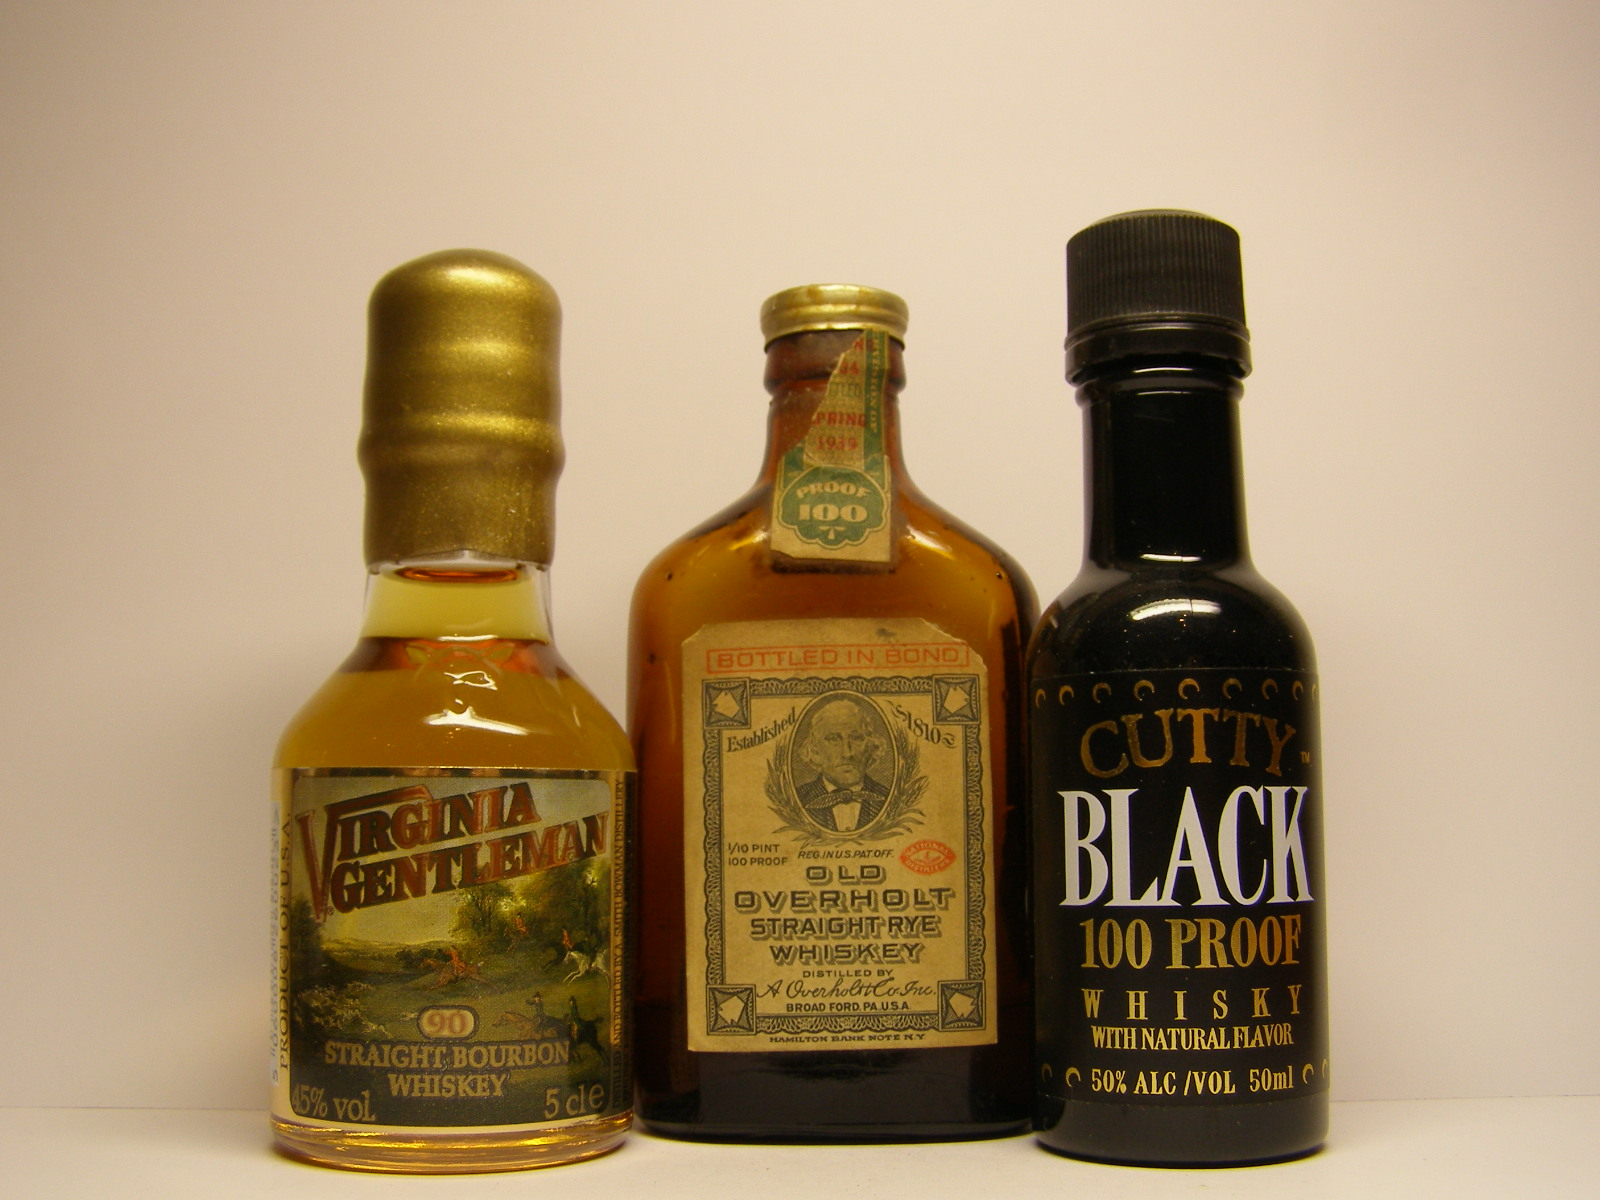 VIRGINIA GENTLEMAN , OLD OVERHOLT , CUTTY BLACK